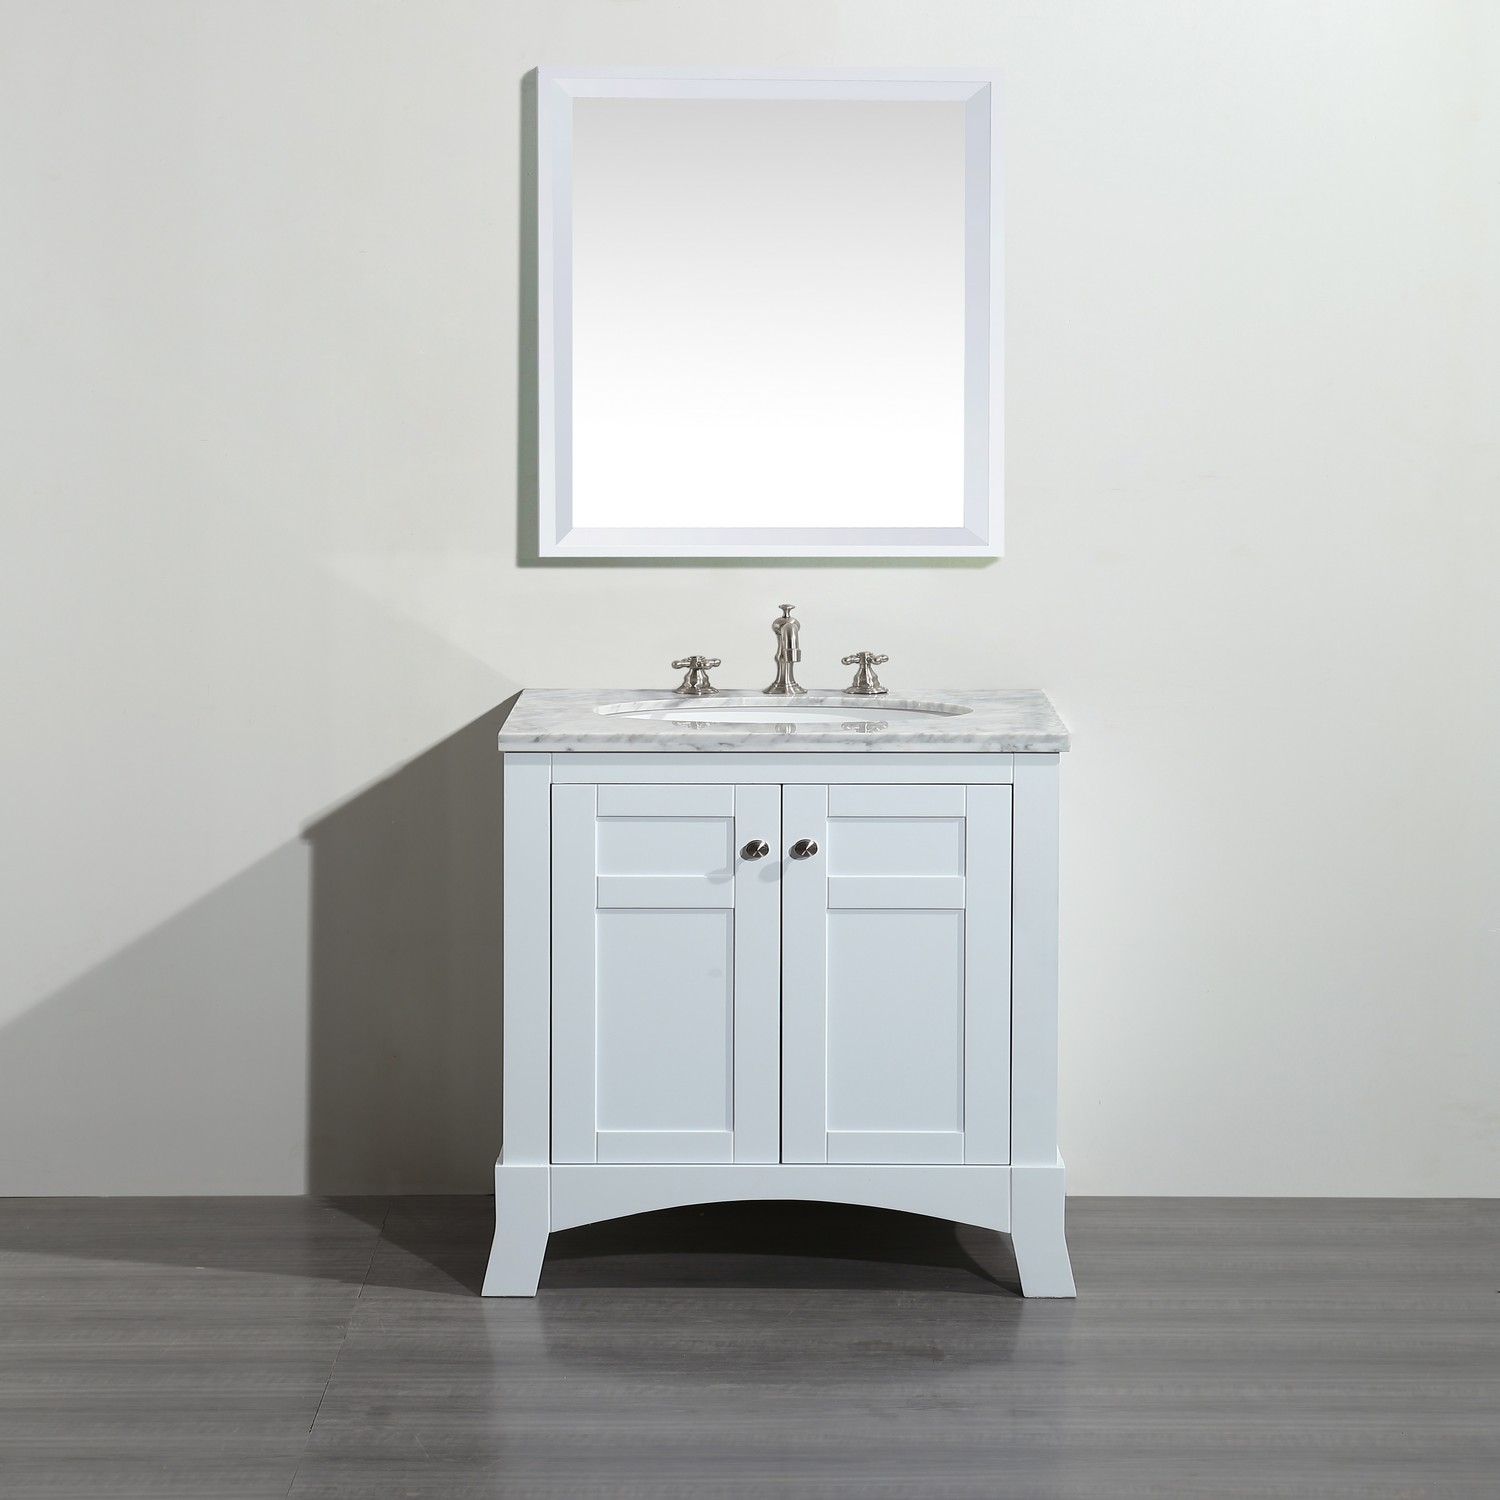 Aberdeen 24 In W X 20 D Bath Vanity White With Carrara Marble Top Sink